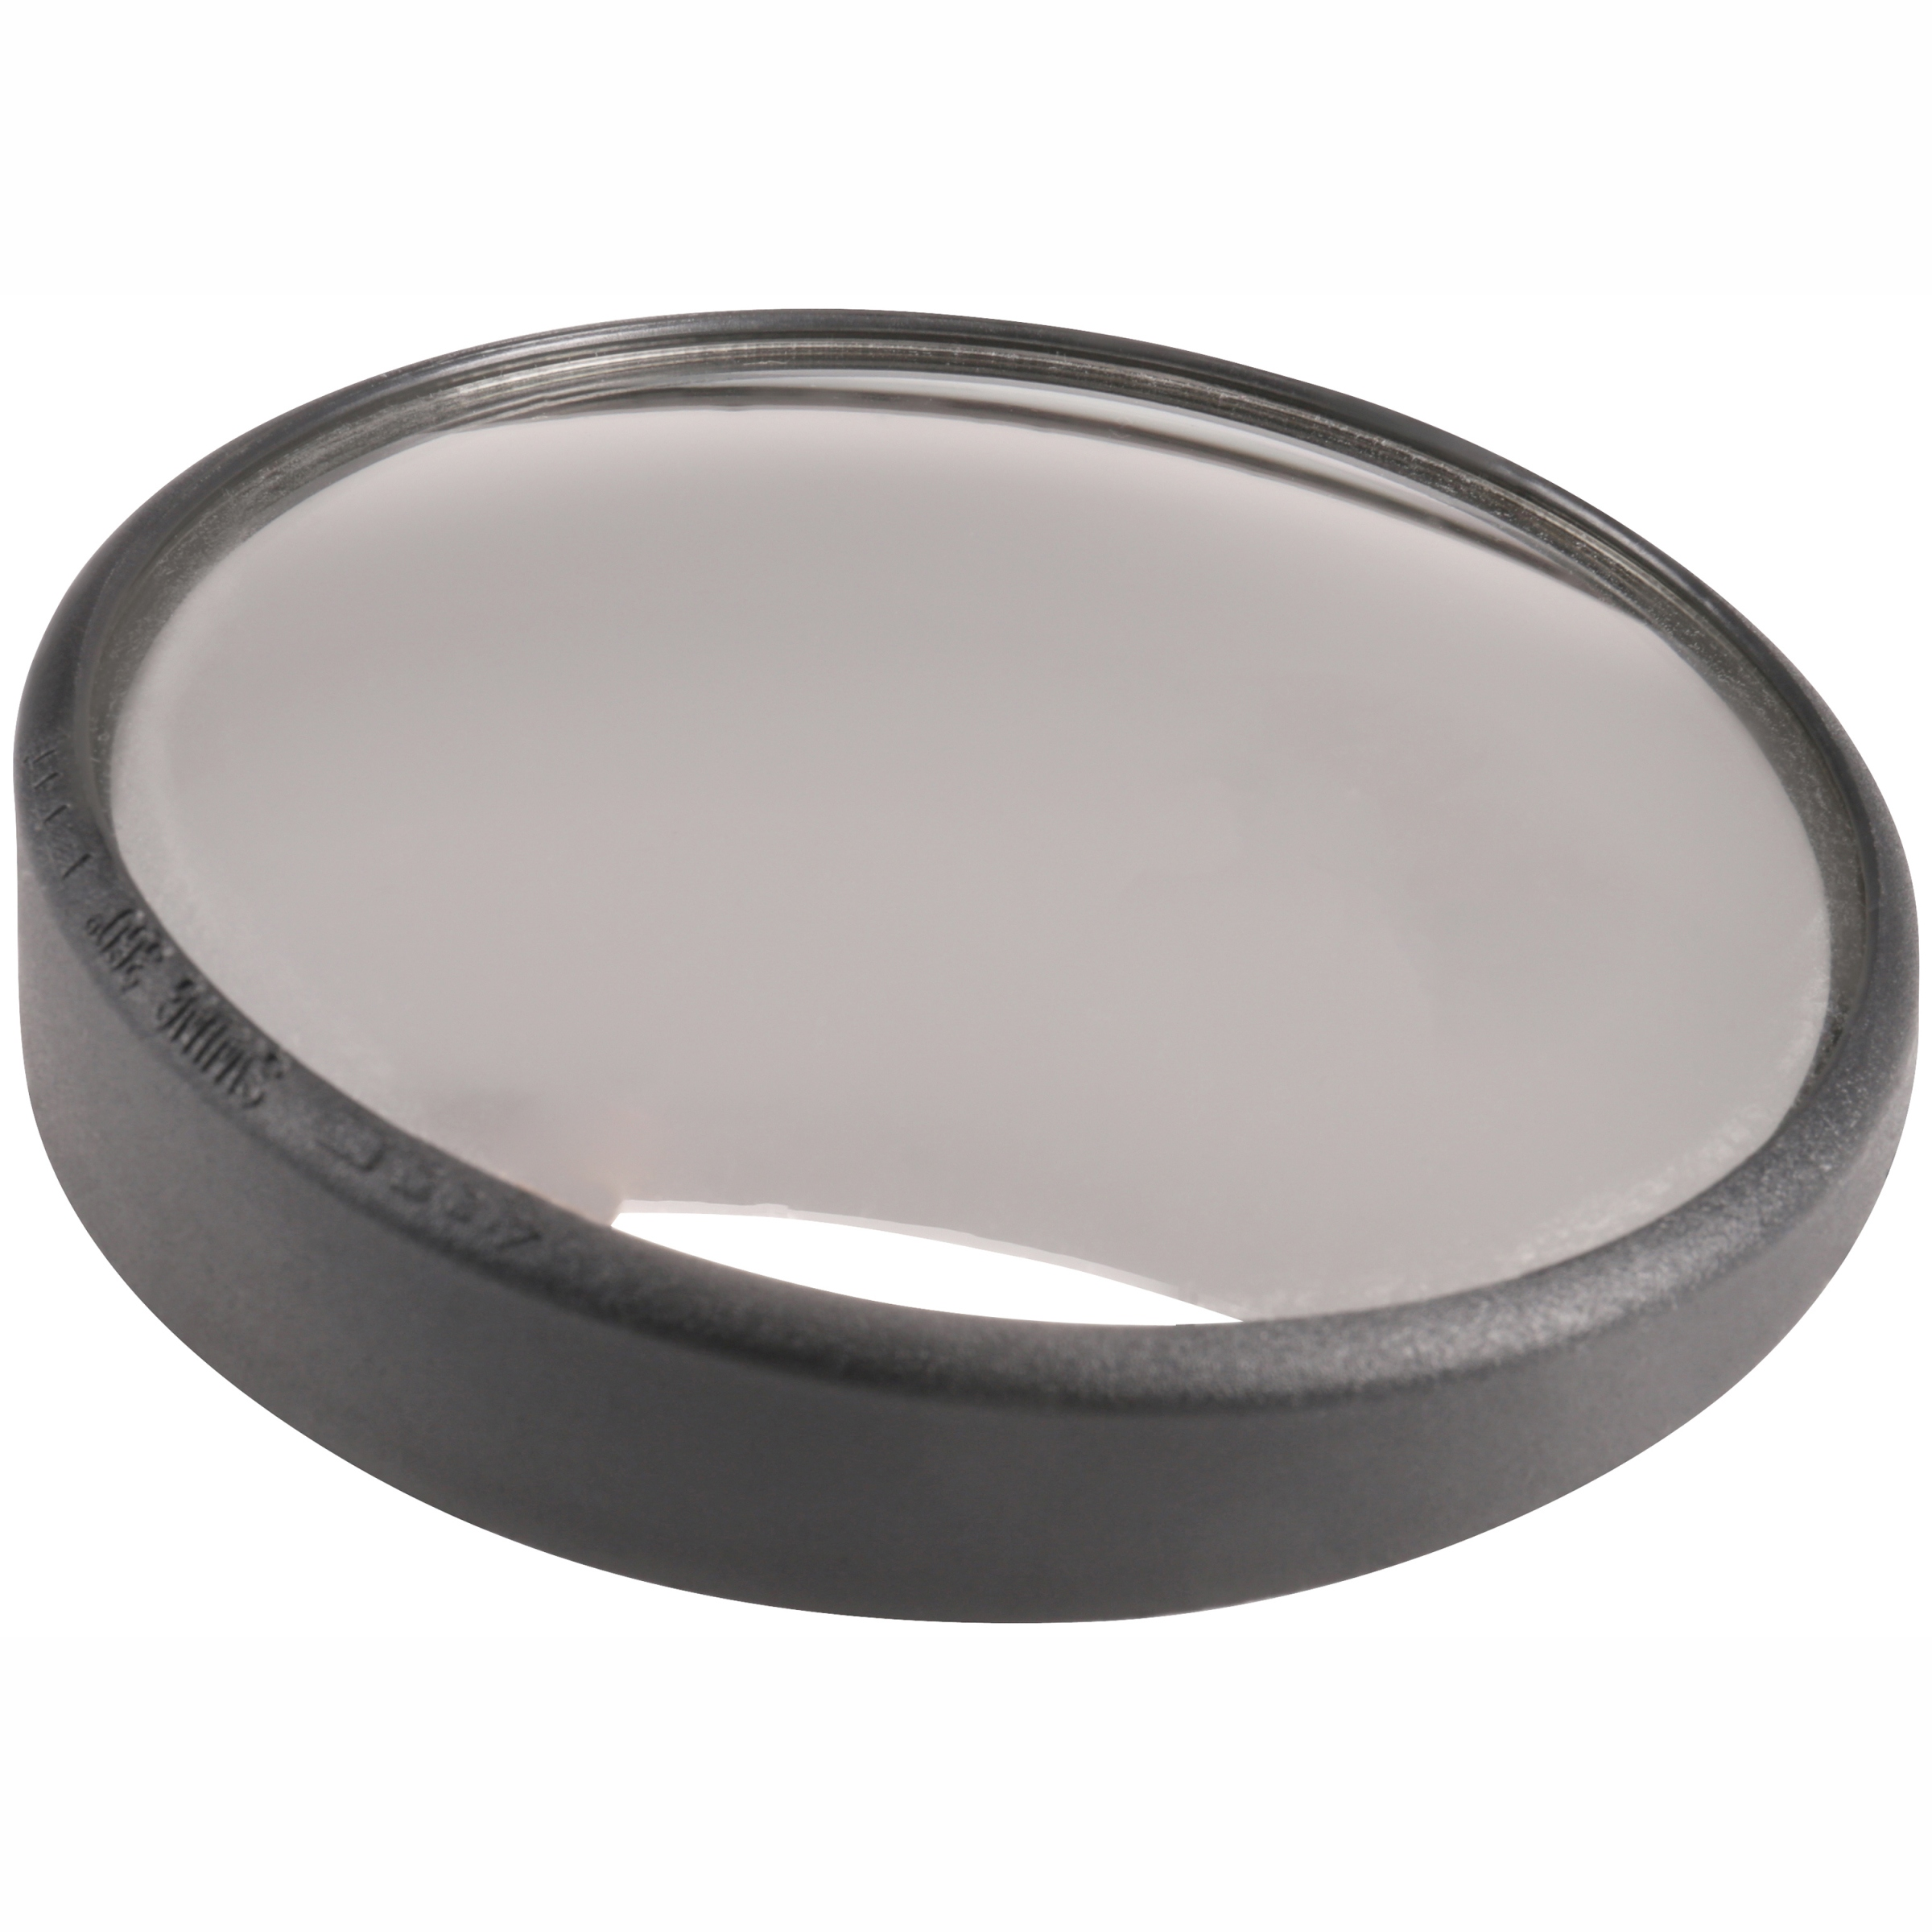 Fit System C0600 3 Round Adjustable Spot Mirror Pack of 2